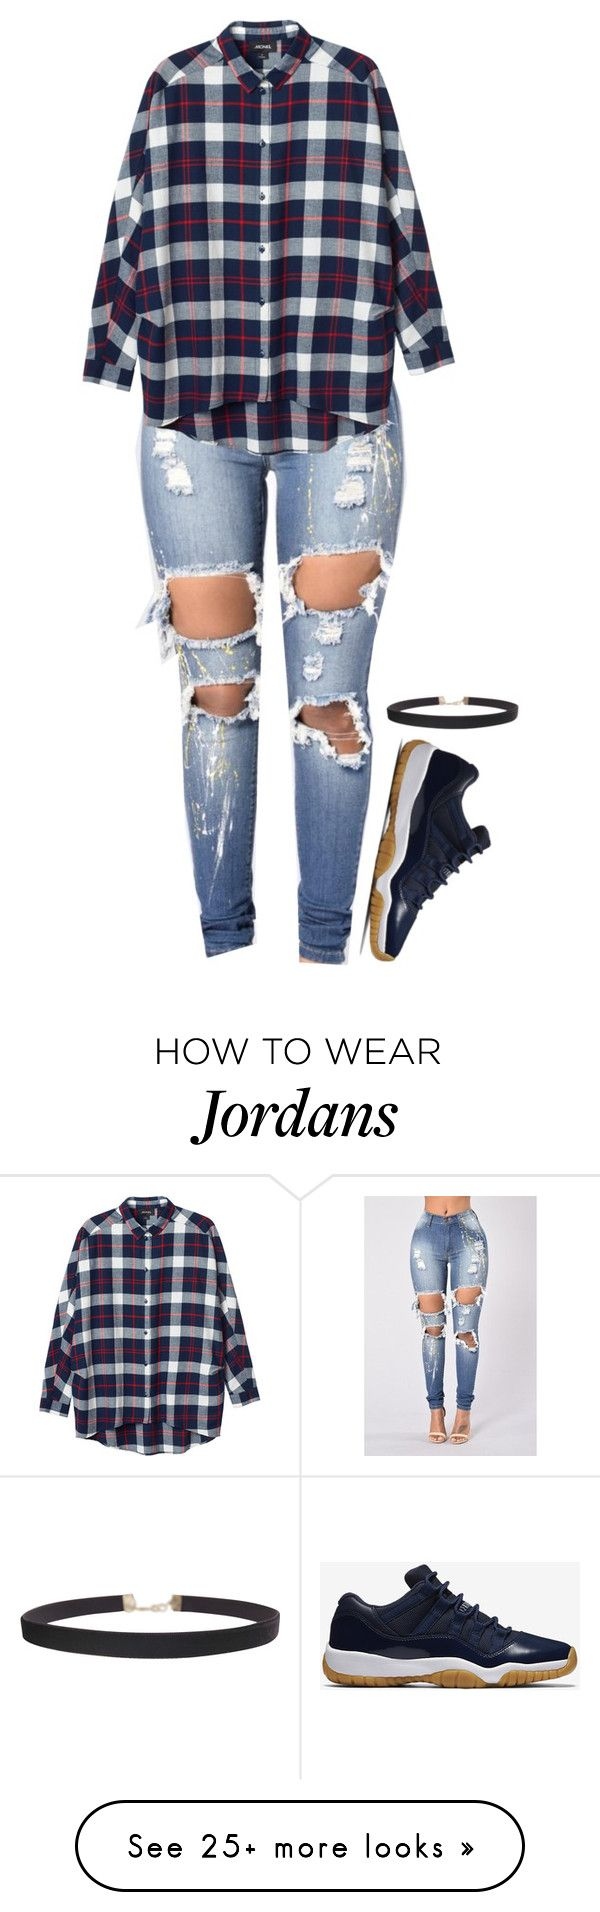 """Untitled #1538"" by kelly213 on Polyvore featuring Monki, NIKE and Humble Chic"